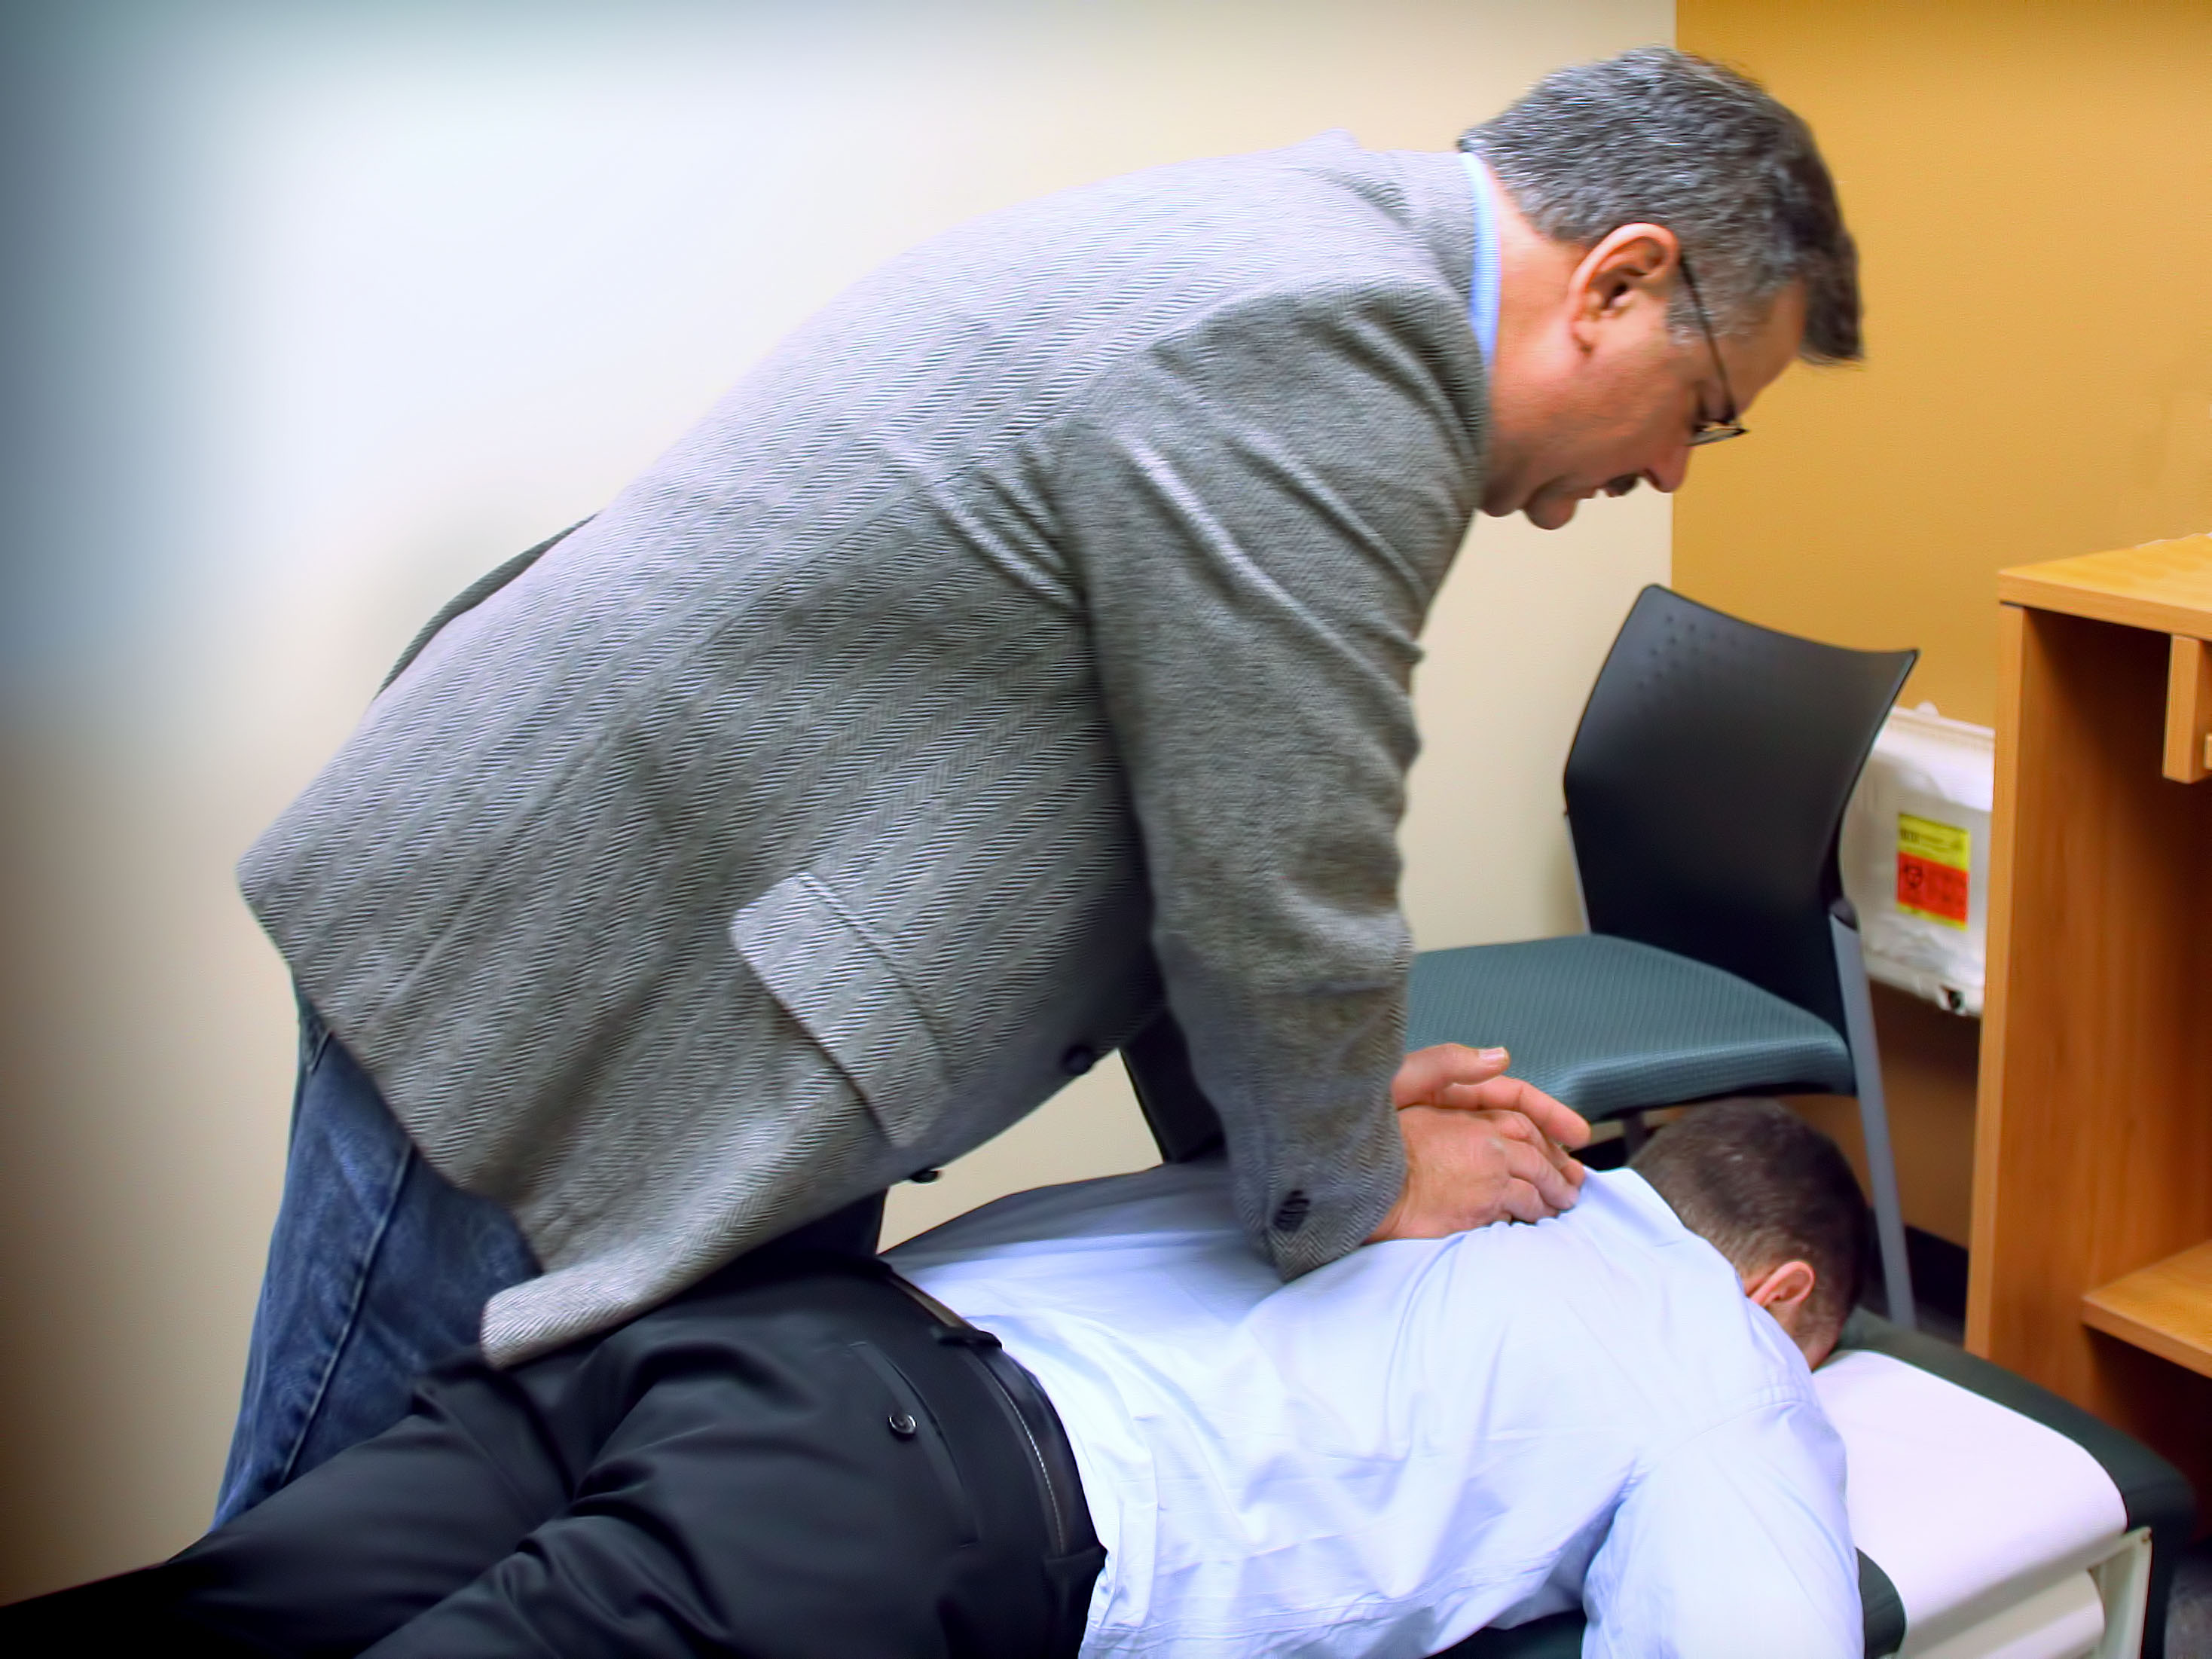 We offer chiropractic care at Genesis Medical in Pittsburgh.